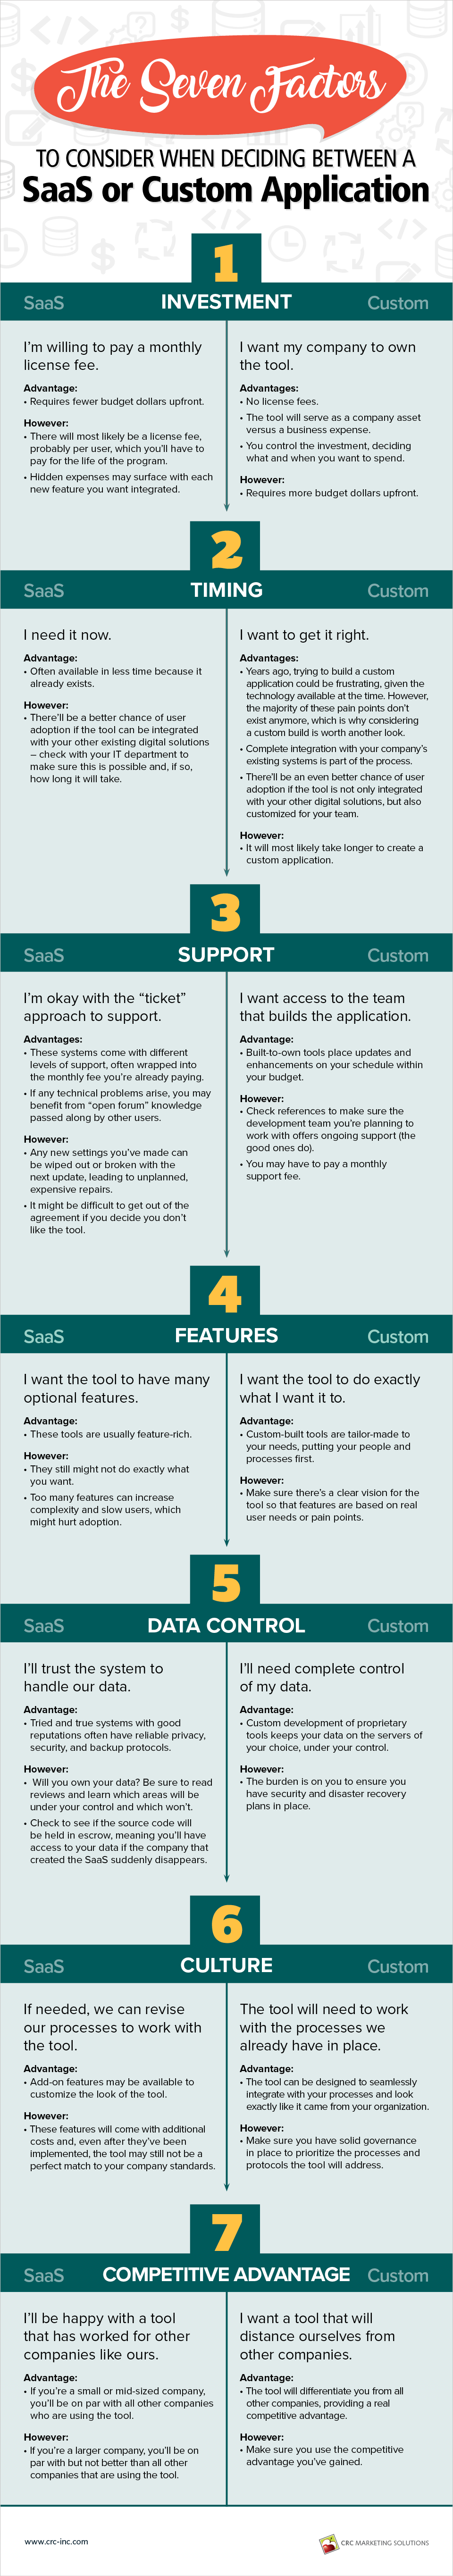 Infographic - Seven factors to consider when choosing between a pre-built or custom web application